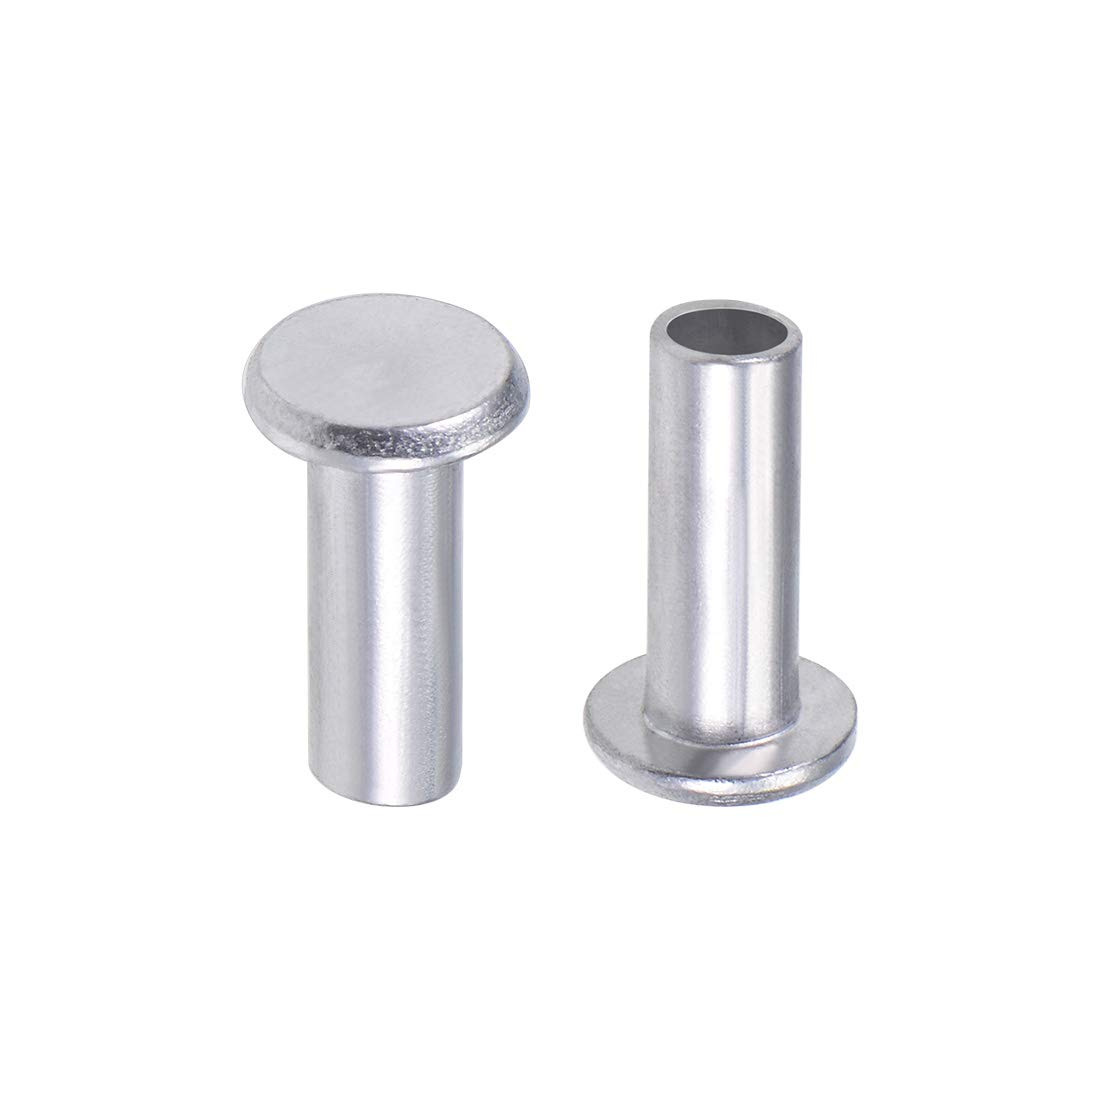 5mm Thread Length GN 822.1 Series Stainless Steel Non Lock-Out Type B Mini Indexing Plunger with Open Lock Mechanism M8 x 0.75mm Thread Size 5mm Diameter